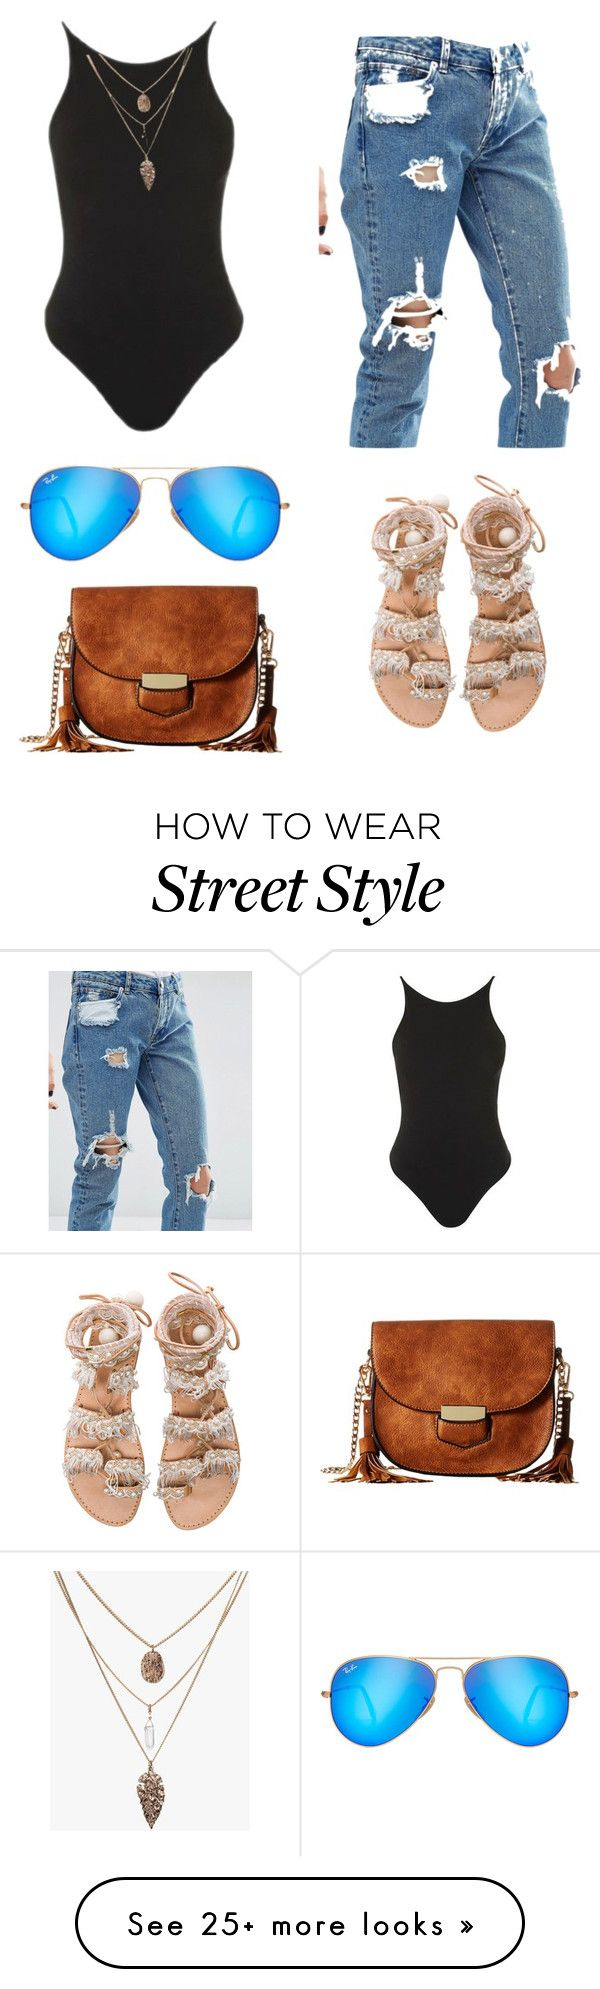 """Street style"" by erinjanae24 on Polyvore featuring ASOS, Topshop, Ray-Ban, Elina Linardaki and Gabriella Rocha"